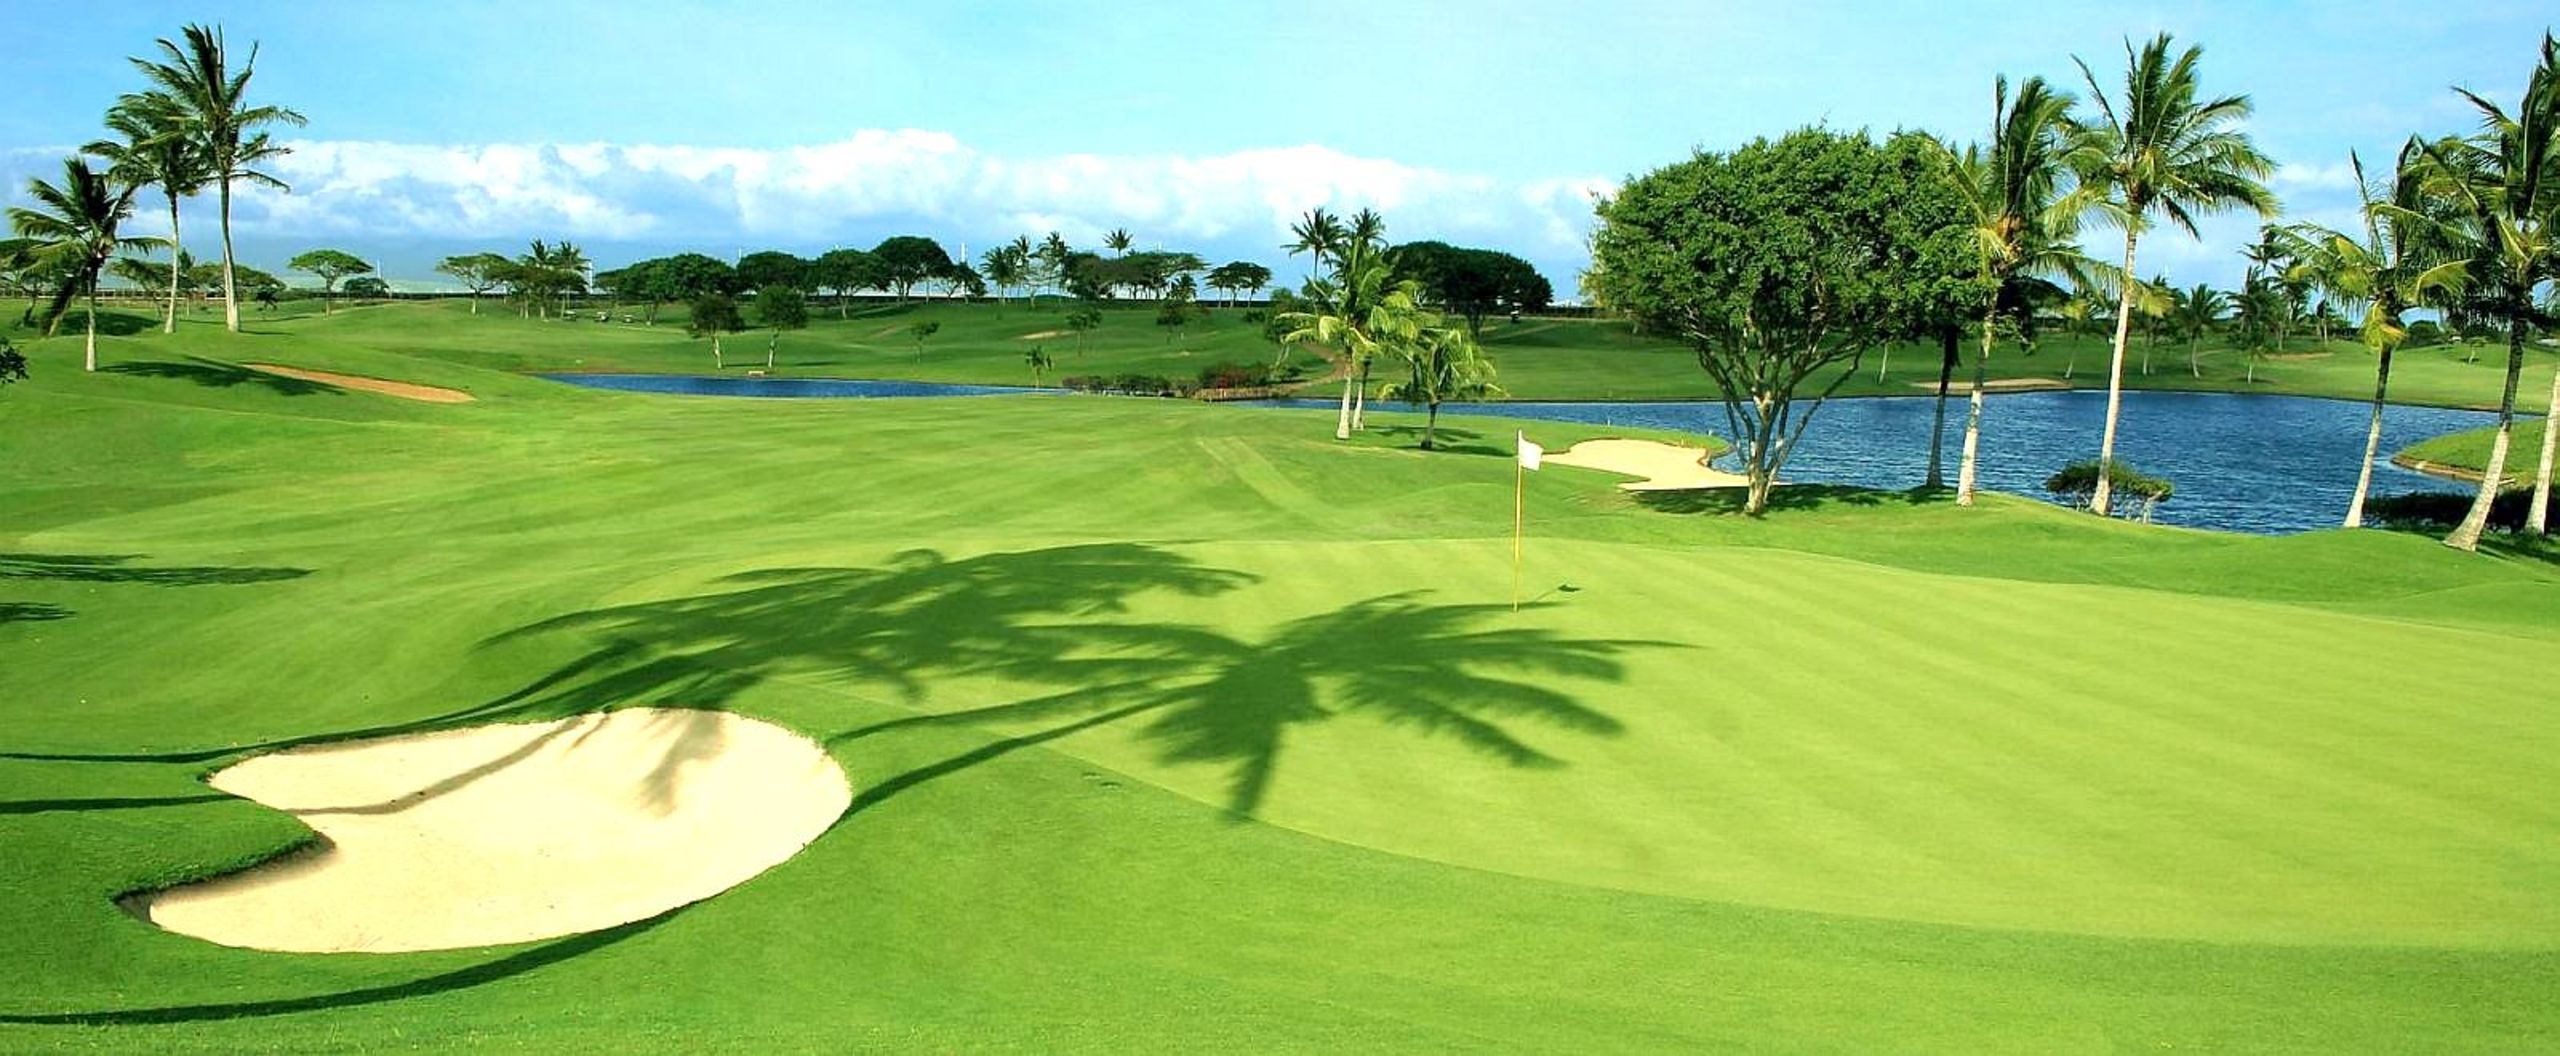 Fabulous golf courses